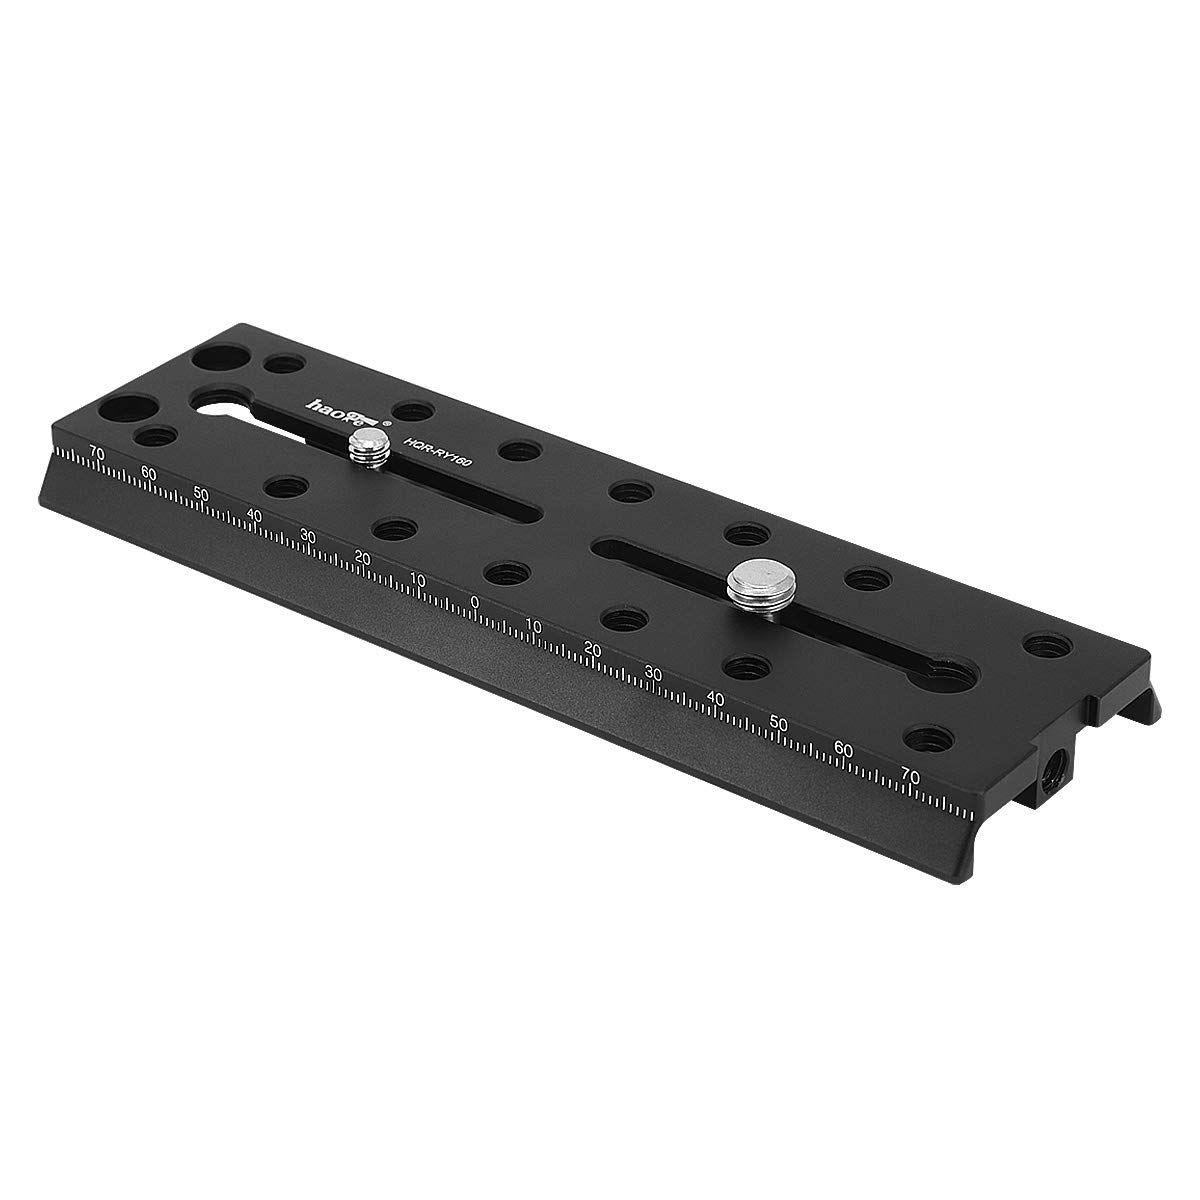 Haoge HQR-RY160 160mm Multi-purpose Long Camera Extender Rail Mounting Quick Release Plate for DJI Ronin-S Ronin S Gimbal Stabilizer